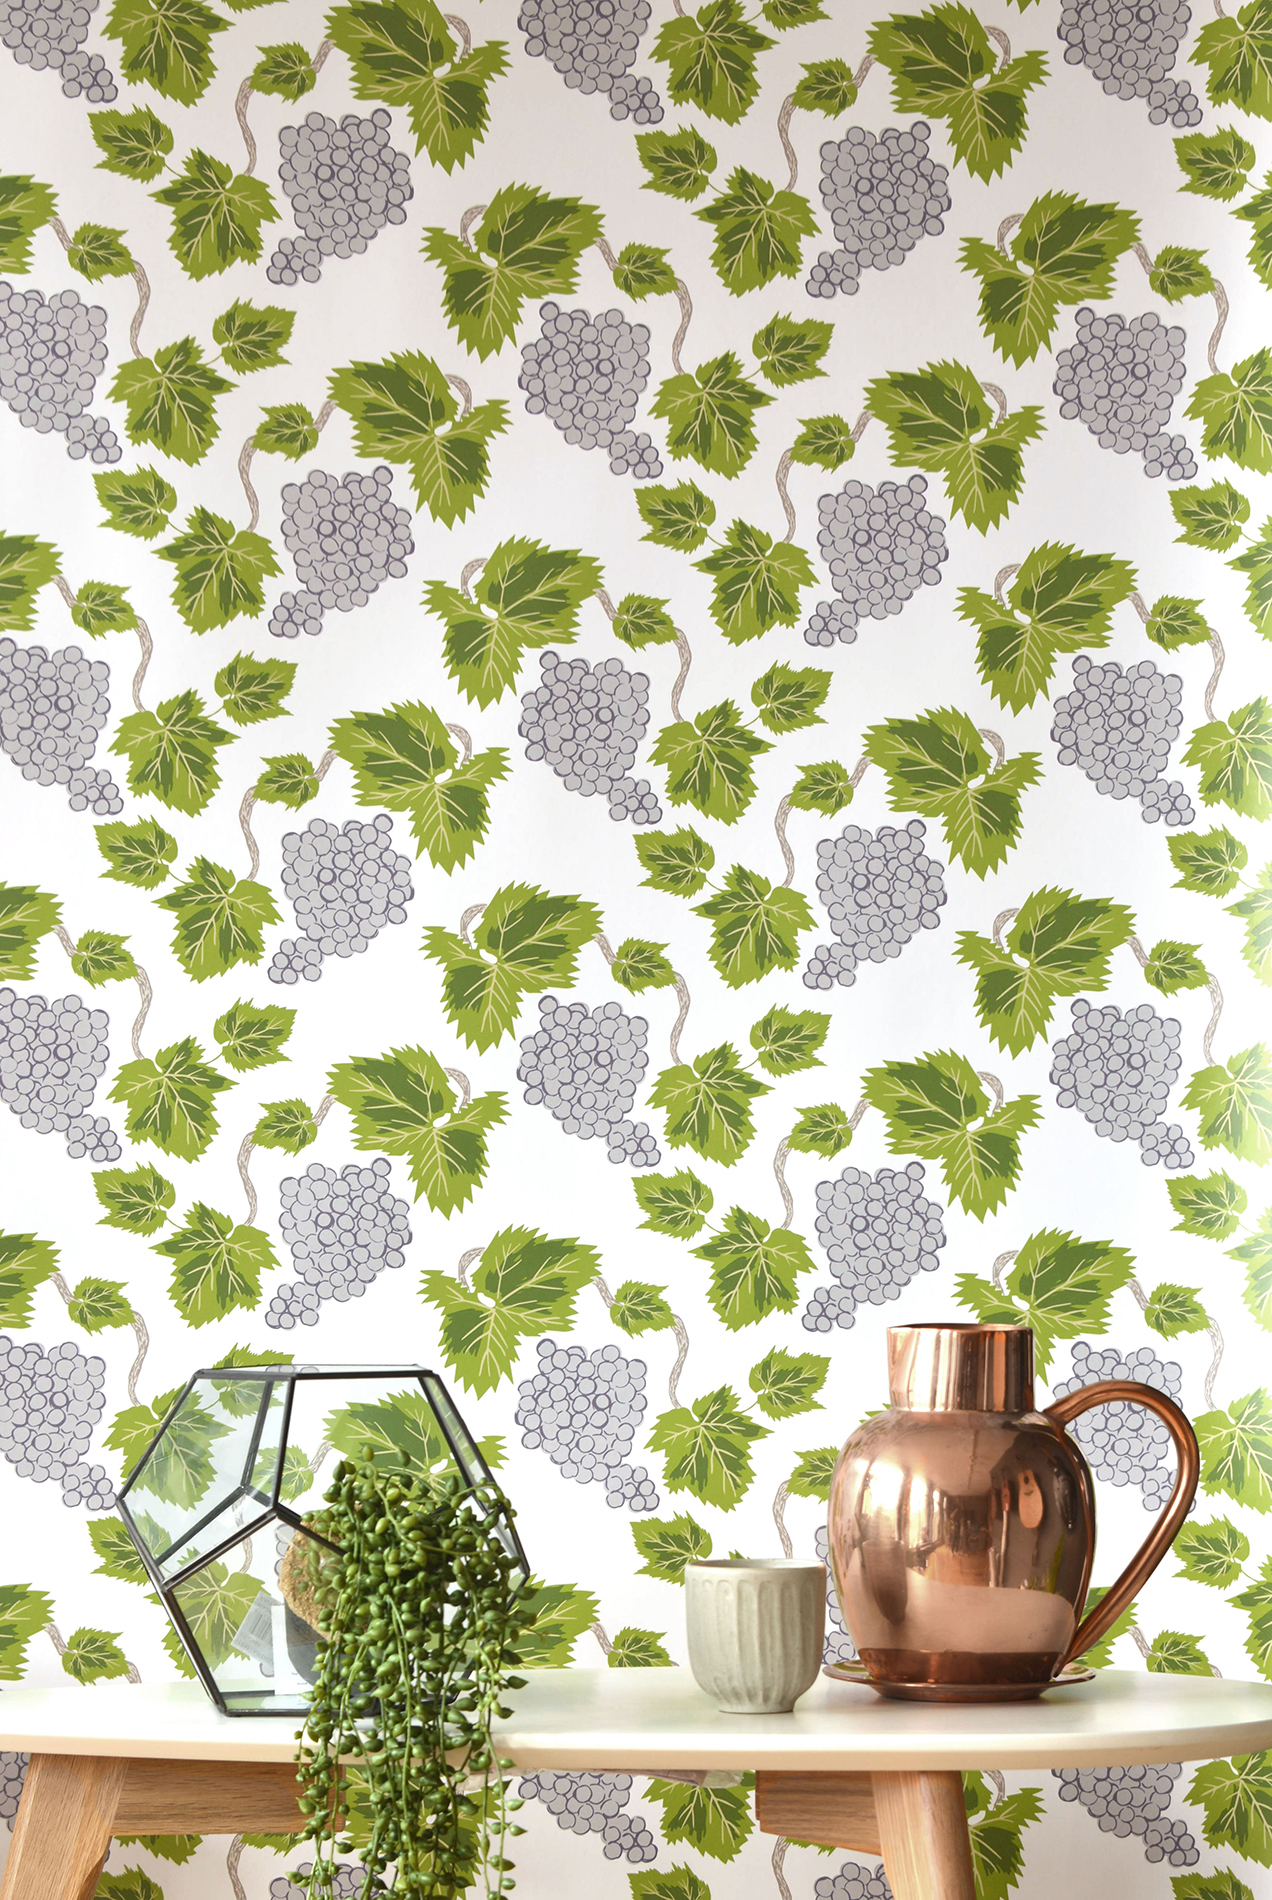 Kate Golding Pinot Noir wallpaper // Modern wallcoverings and interior decor.